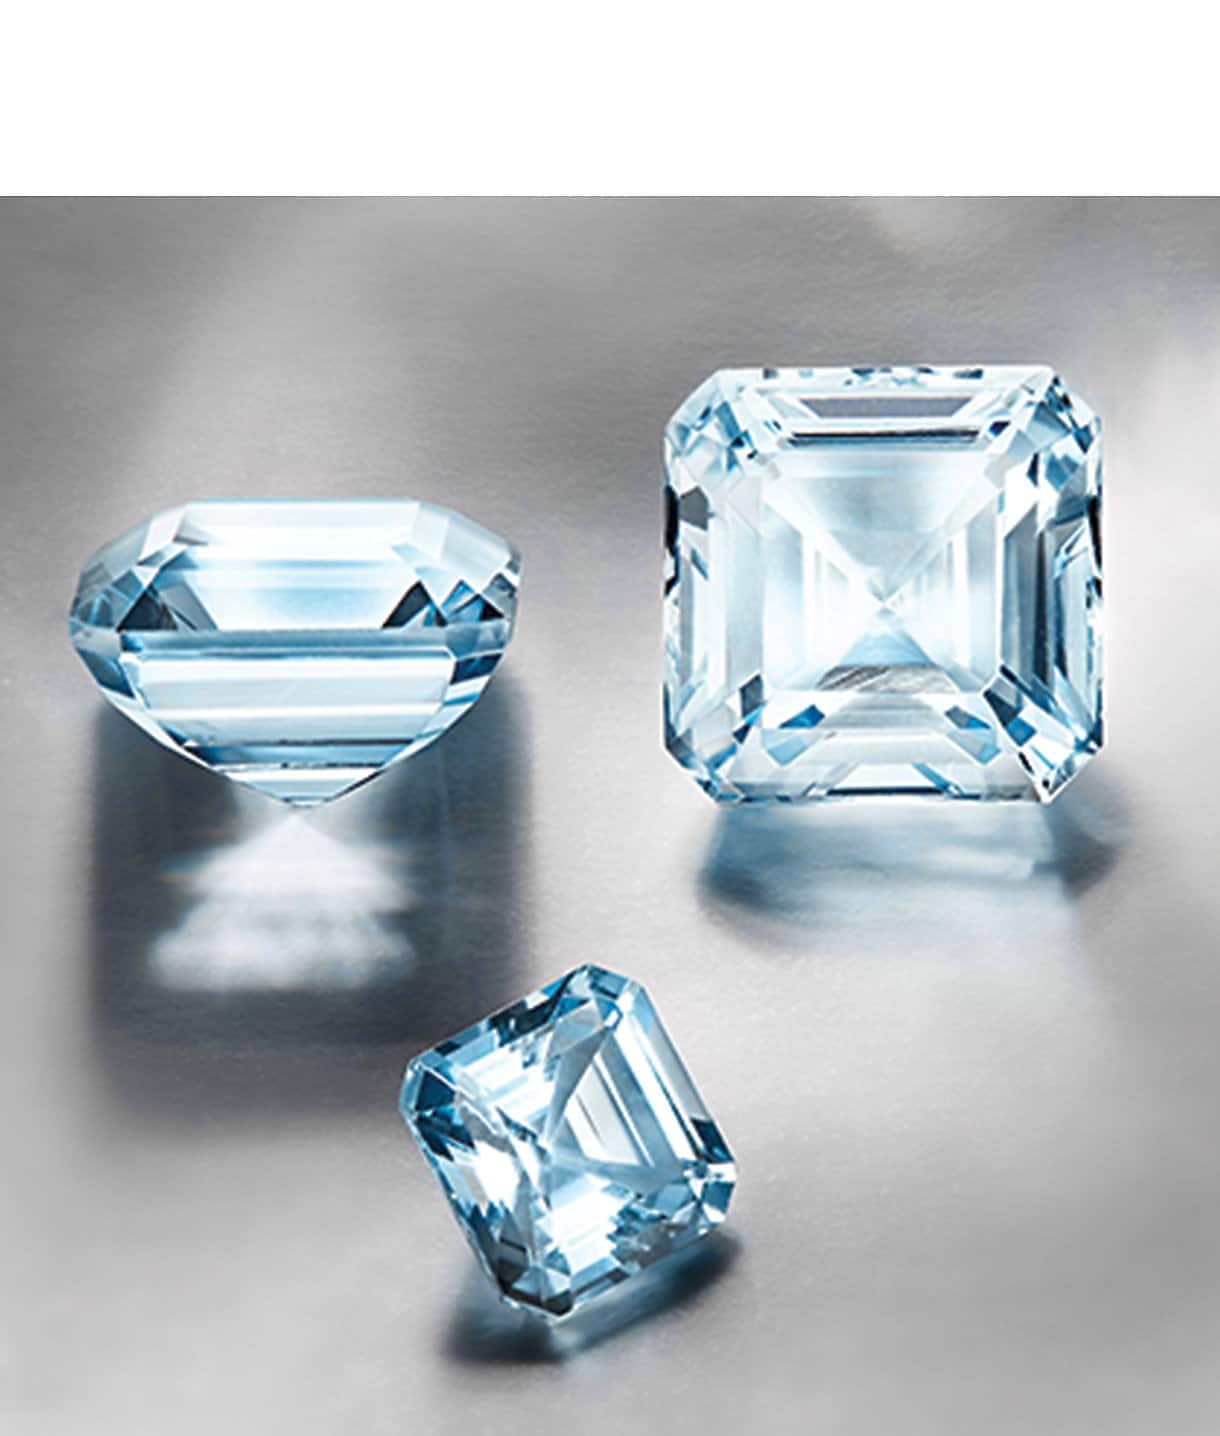 Loose Aquamarine gemstones